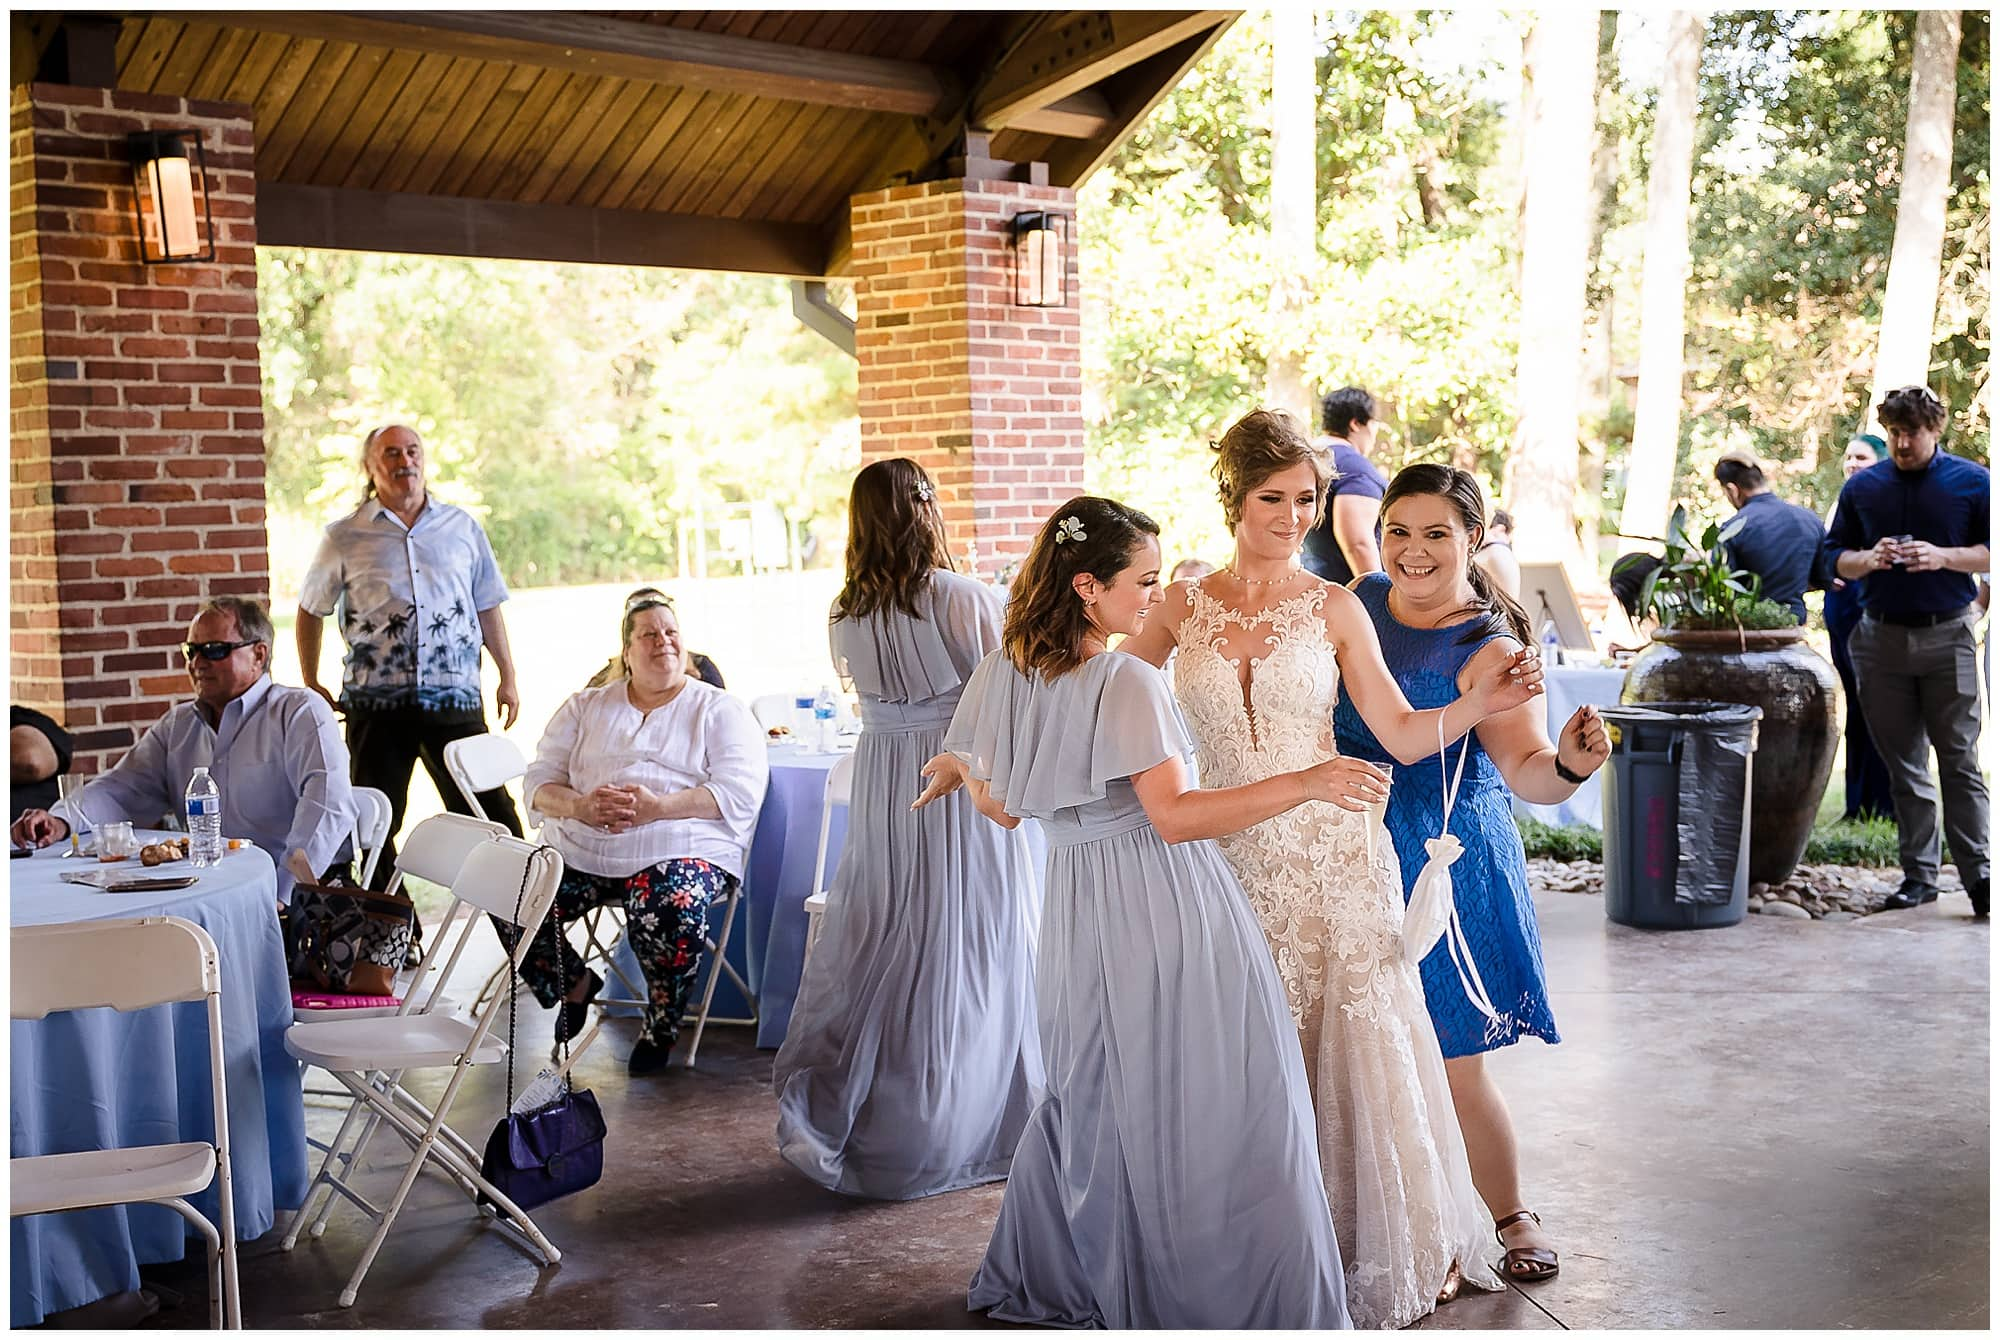 bride dancing with bridesmaid and friend Orangerie wedding in Baton Rouge